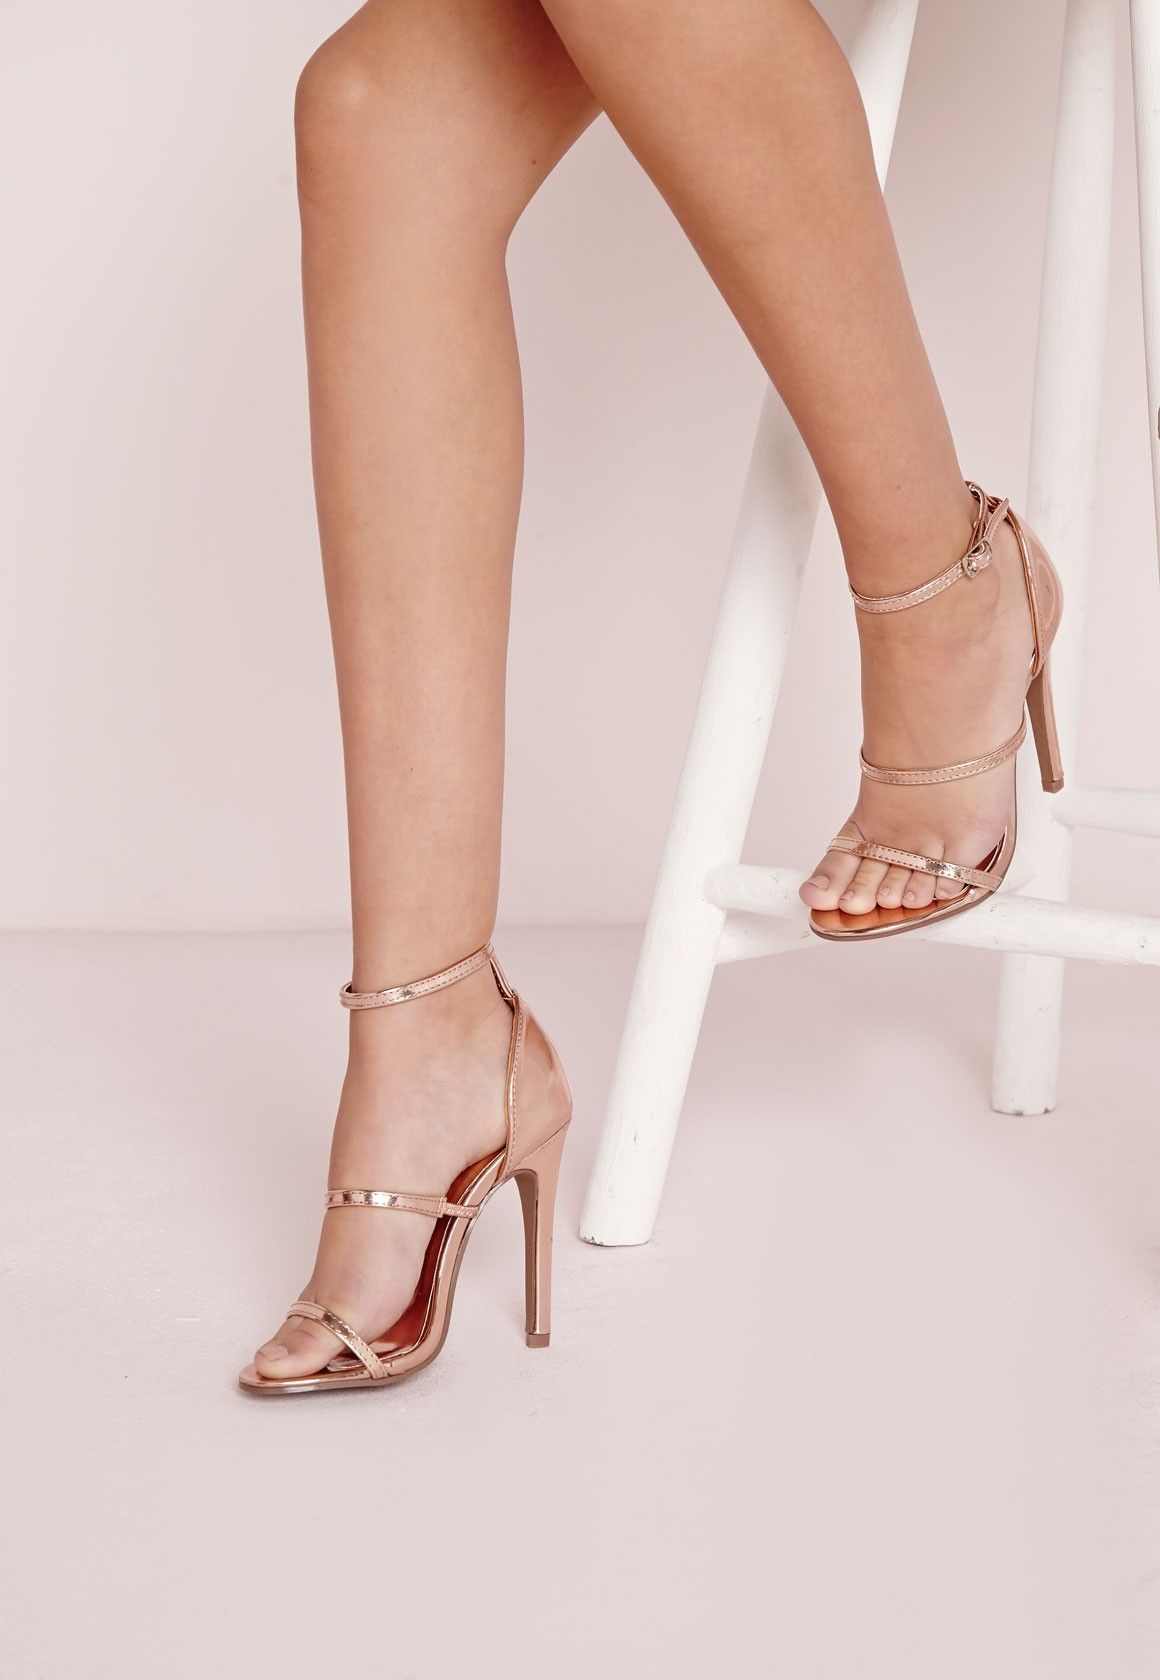 99ab1eca67d Missguided - Three Strap Barely There Heeled Sandals Rose Gold ...